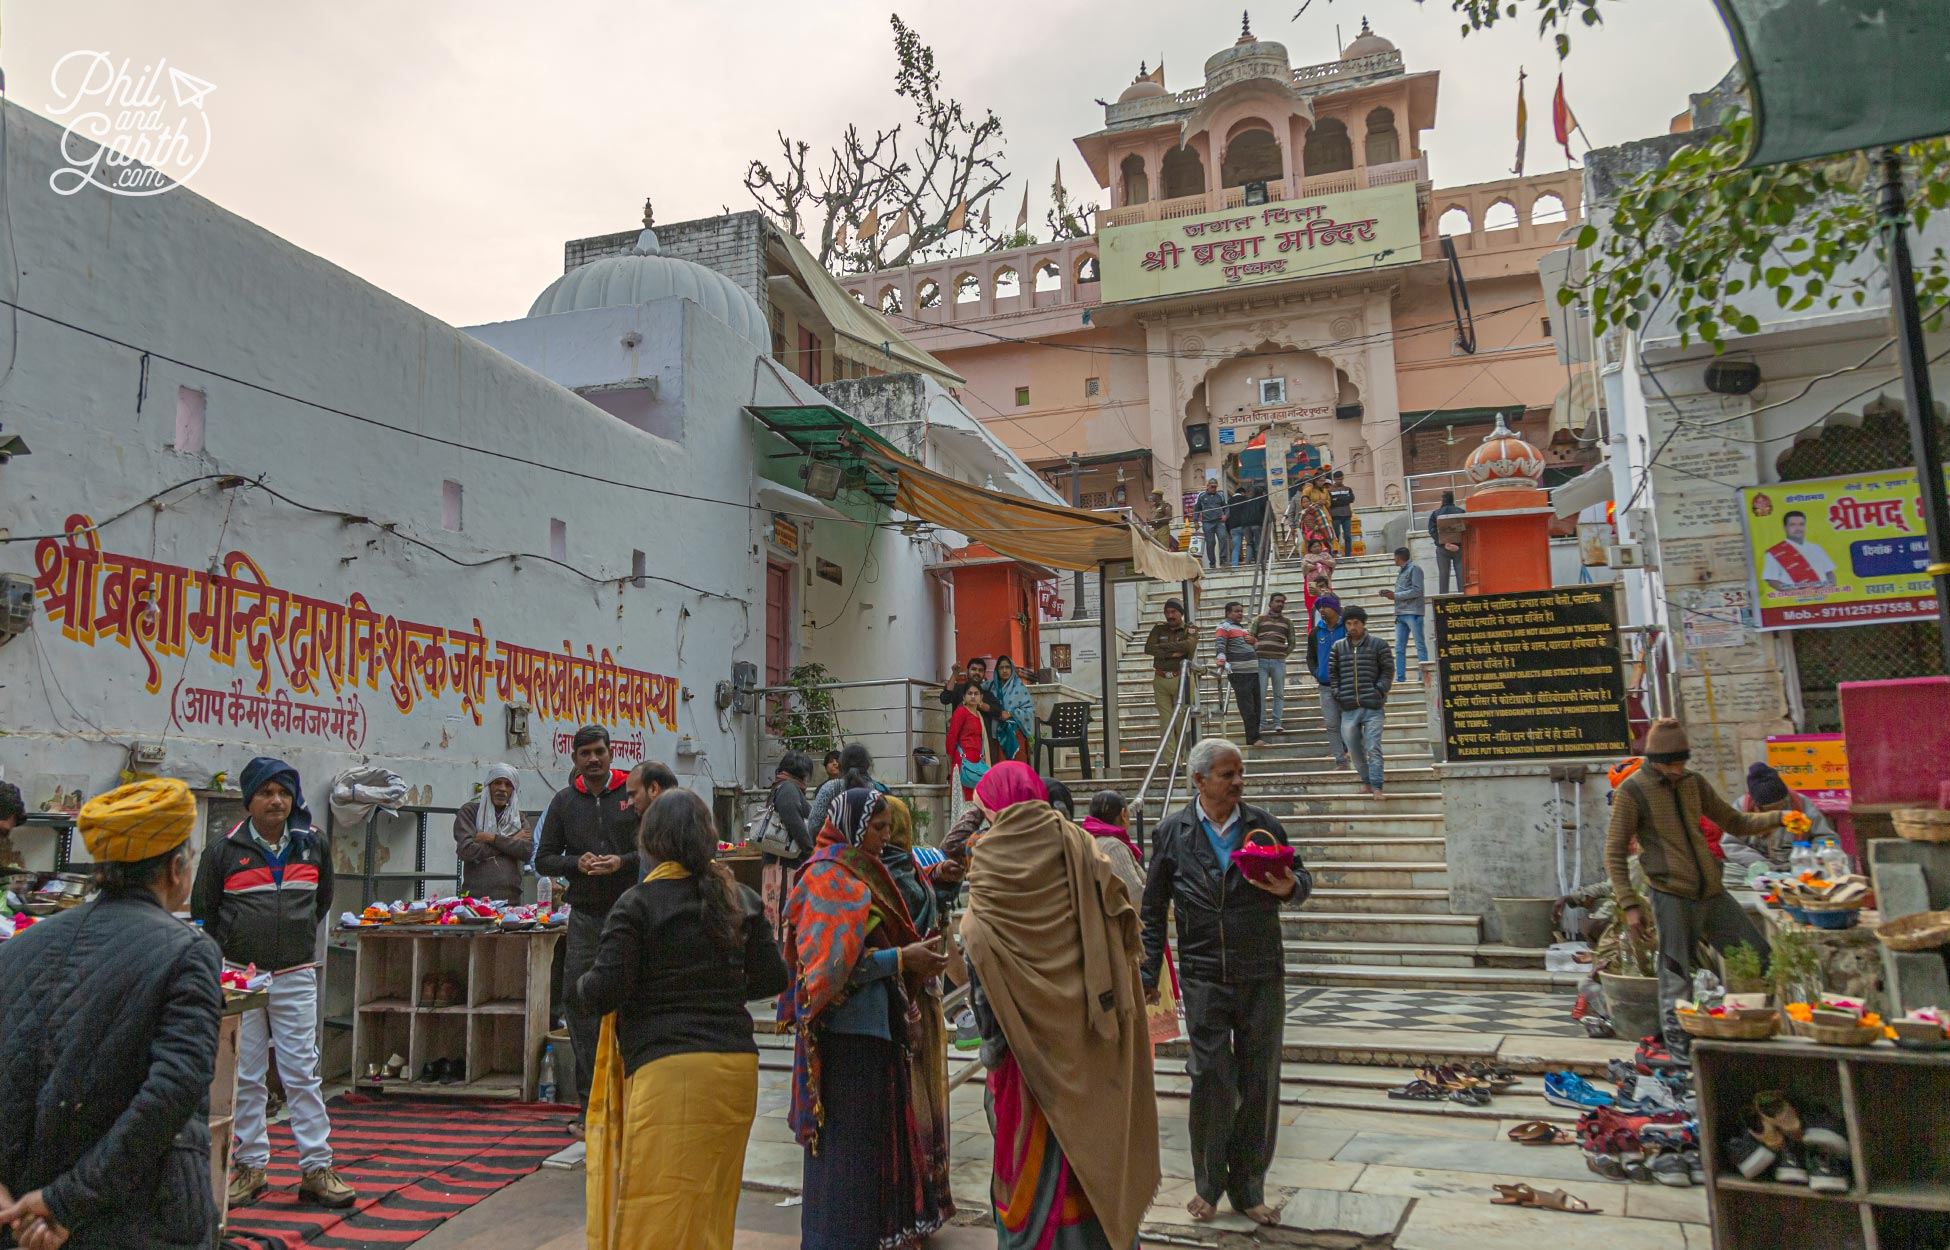 Entrance to the 14th century Brahma Temple - the must see place to visit in Pushkar